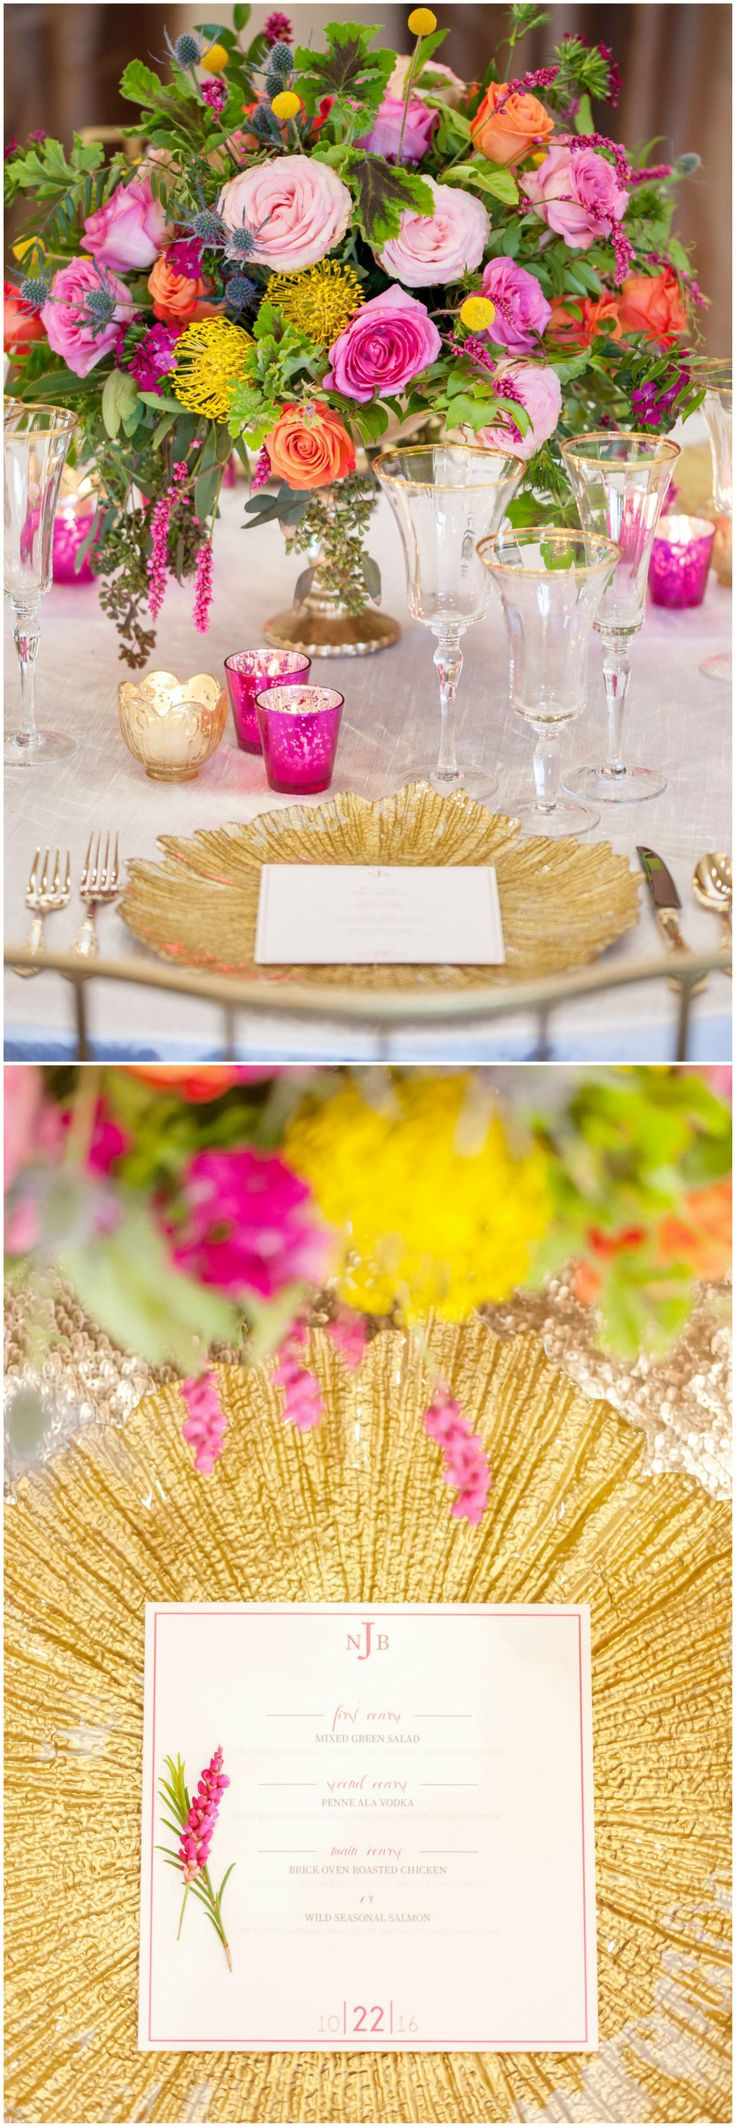 422 best Wedding Placesettings images on Pinterest Gold flatware